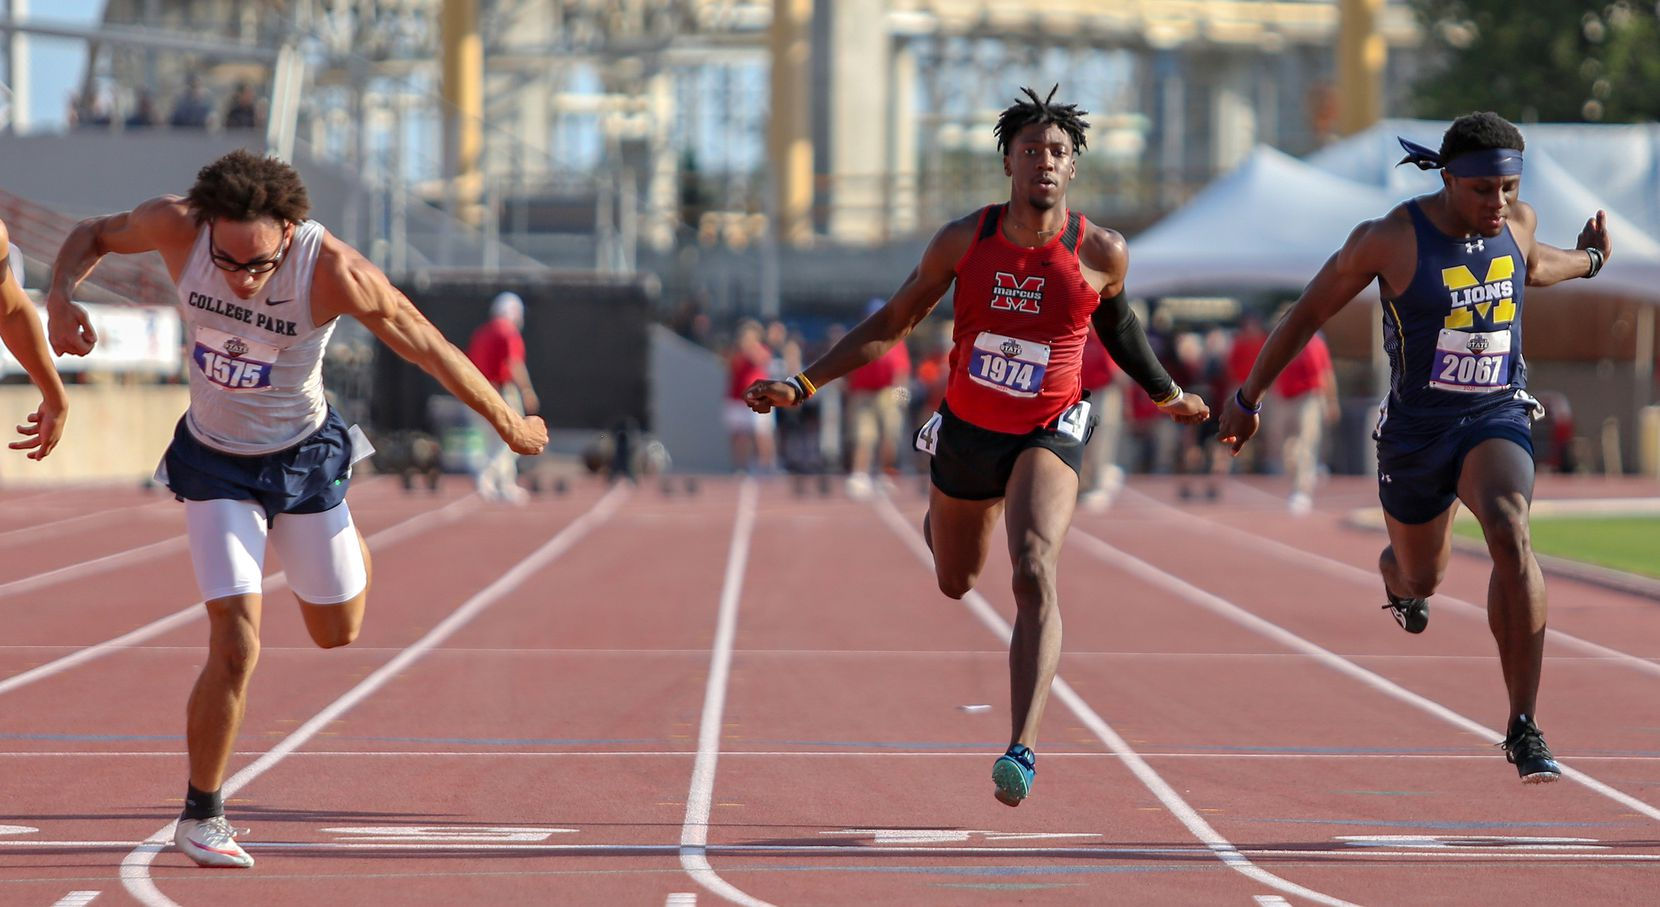 Flower Mound Marcus' J. Michael Sturdivant competes in the 6A Boys 100 meter run during the UIL state track meet at the Mike A. Myers Stadium, at the University of Texas on May 8, 2021 in Austin, Texas.